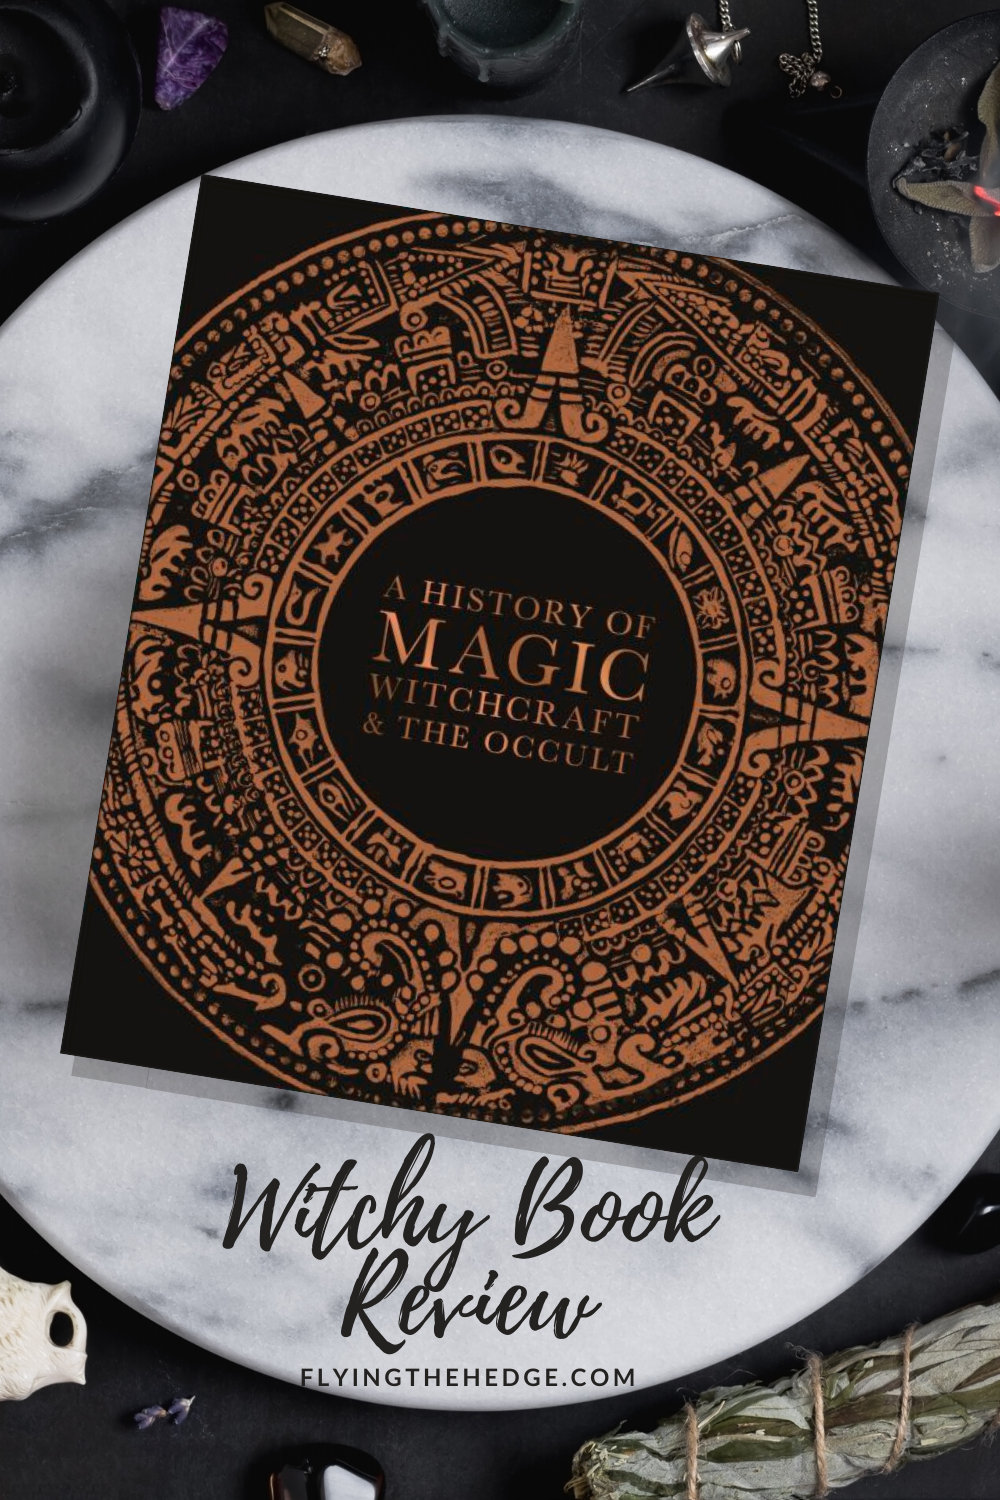 book review, witchcraft, pagan, DK Publishing, history of witchcraft, witchy